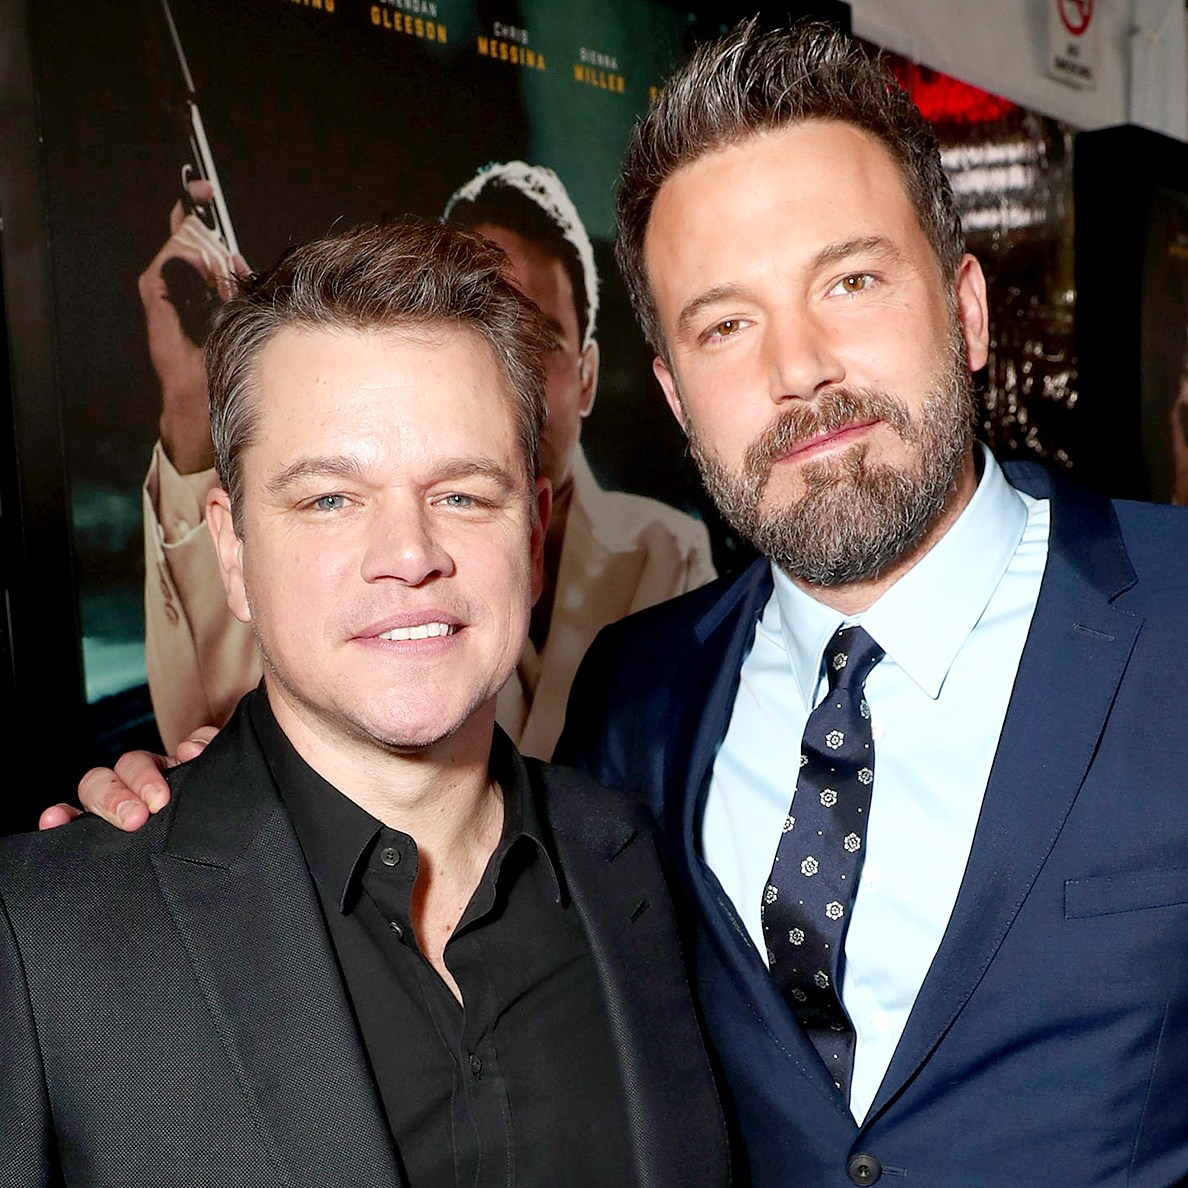 Ben-Affleck-and-Matt-Damon-rider